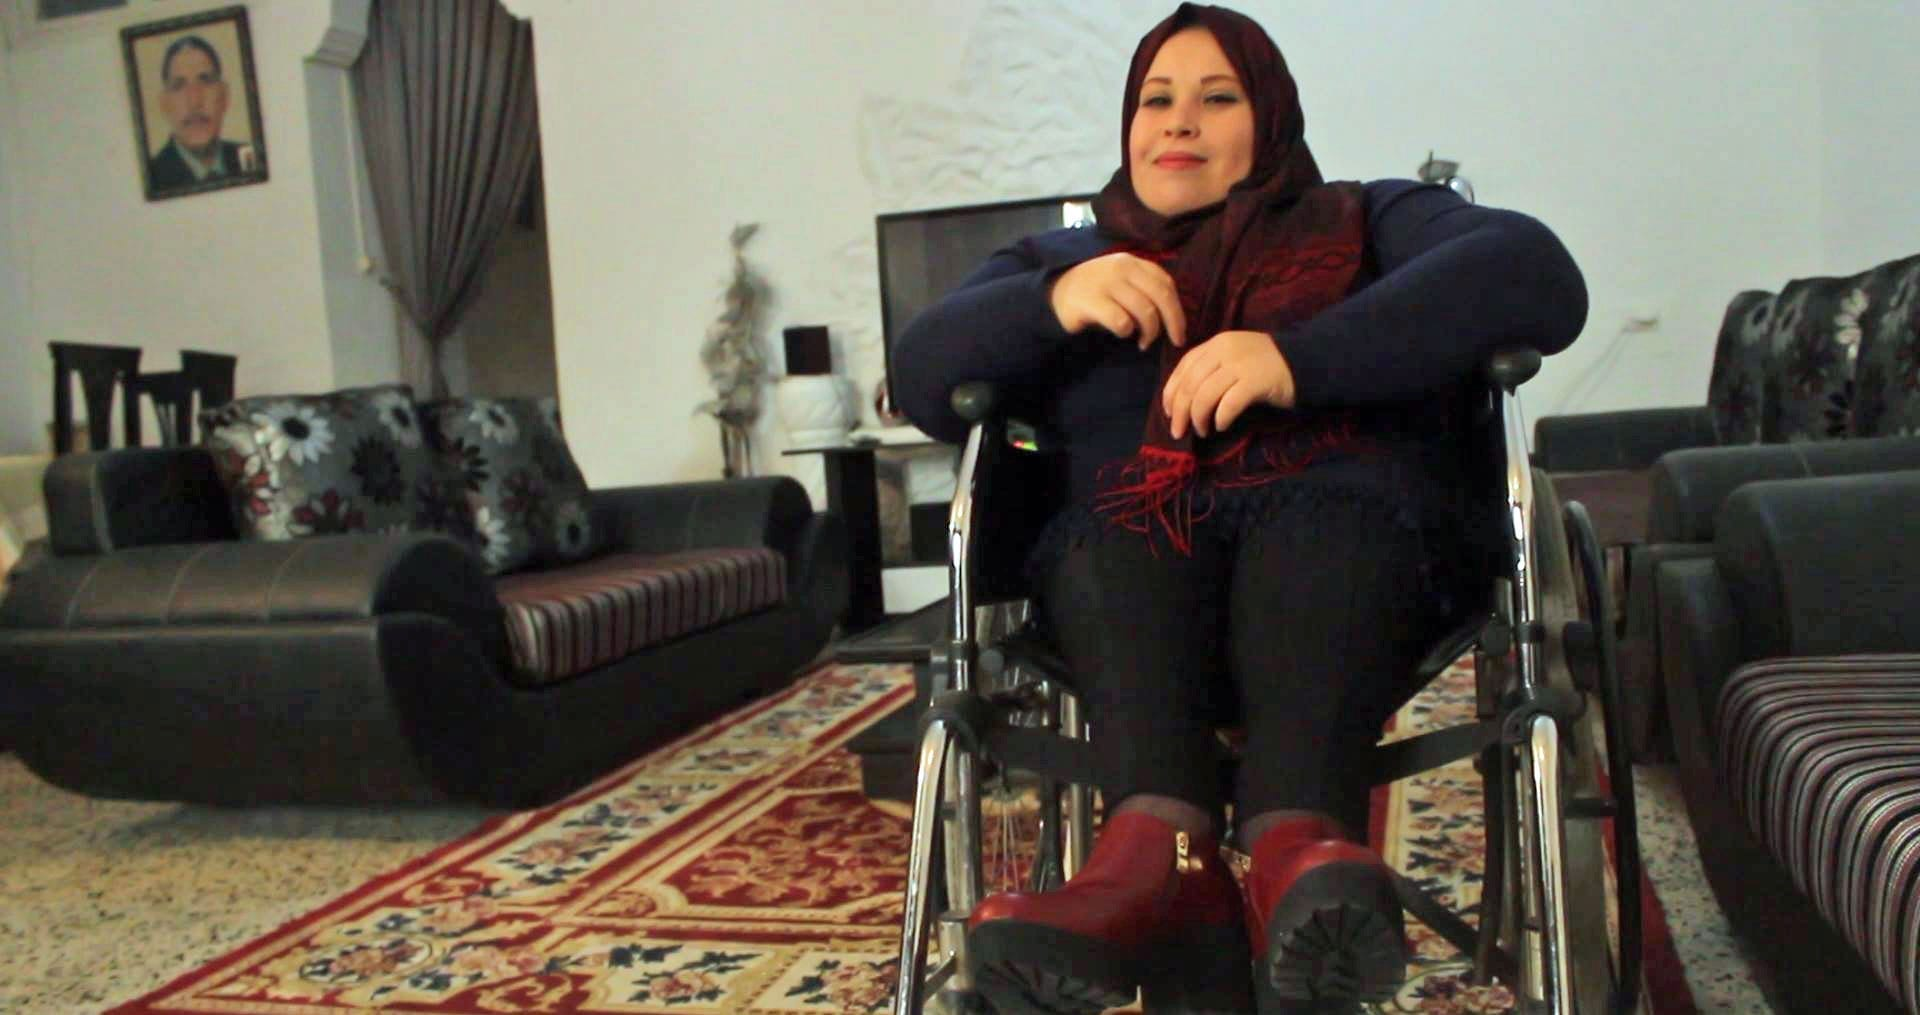 Tunisia, persons with disabilities, unions, Solidarity Center